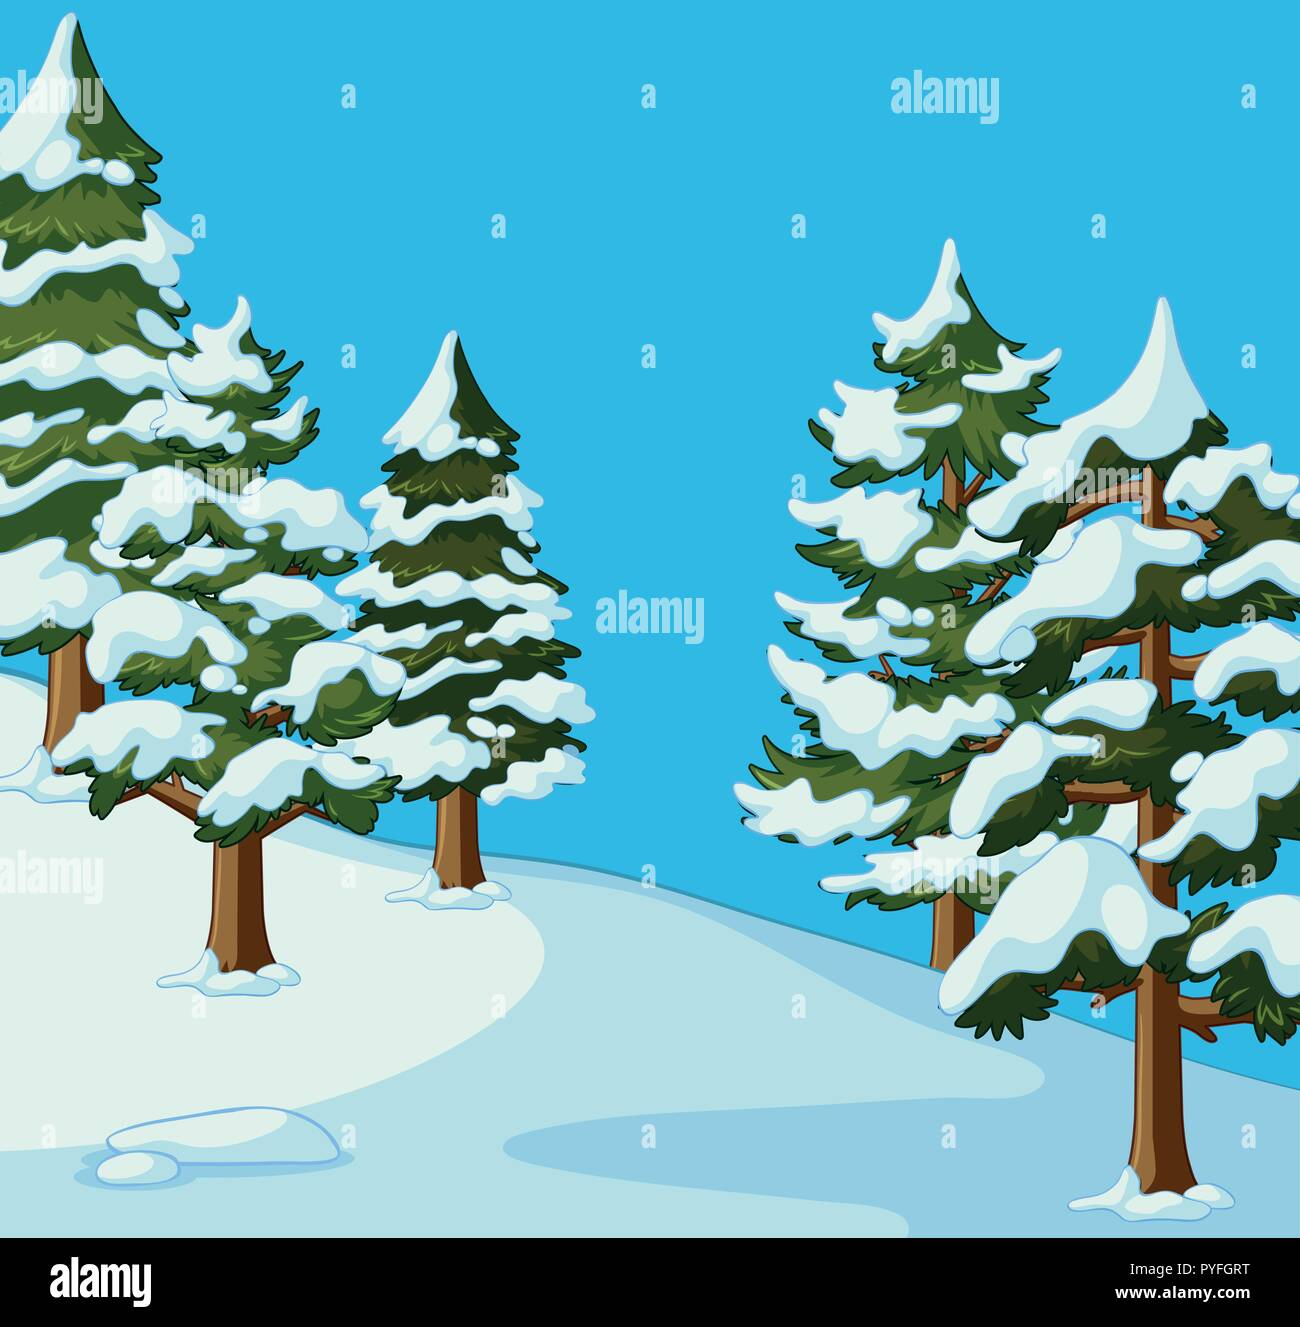 pine trees covered with snow illustration stock vector image & art - alamy  alamy